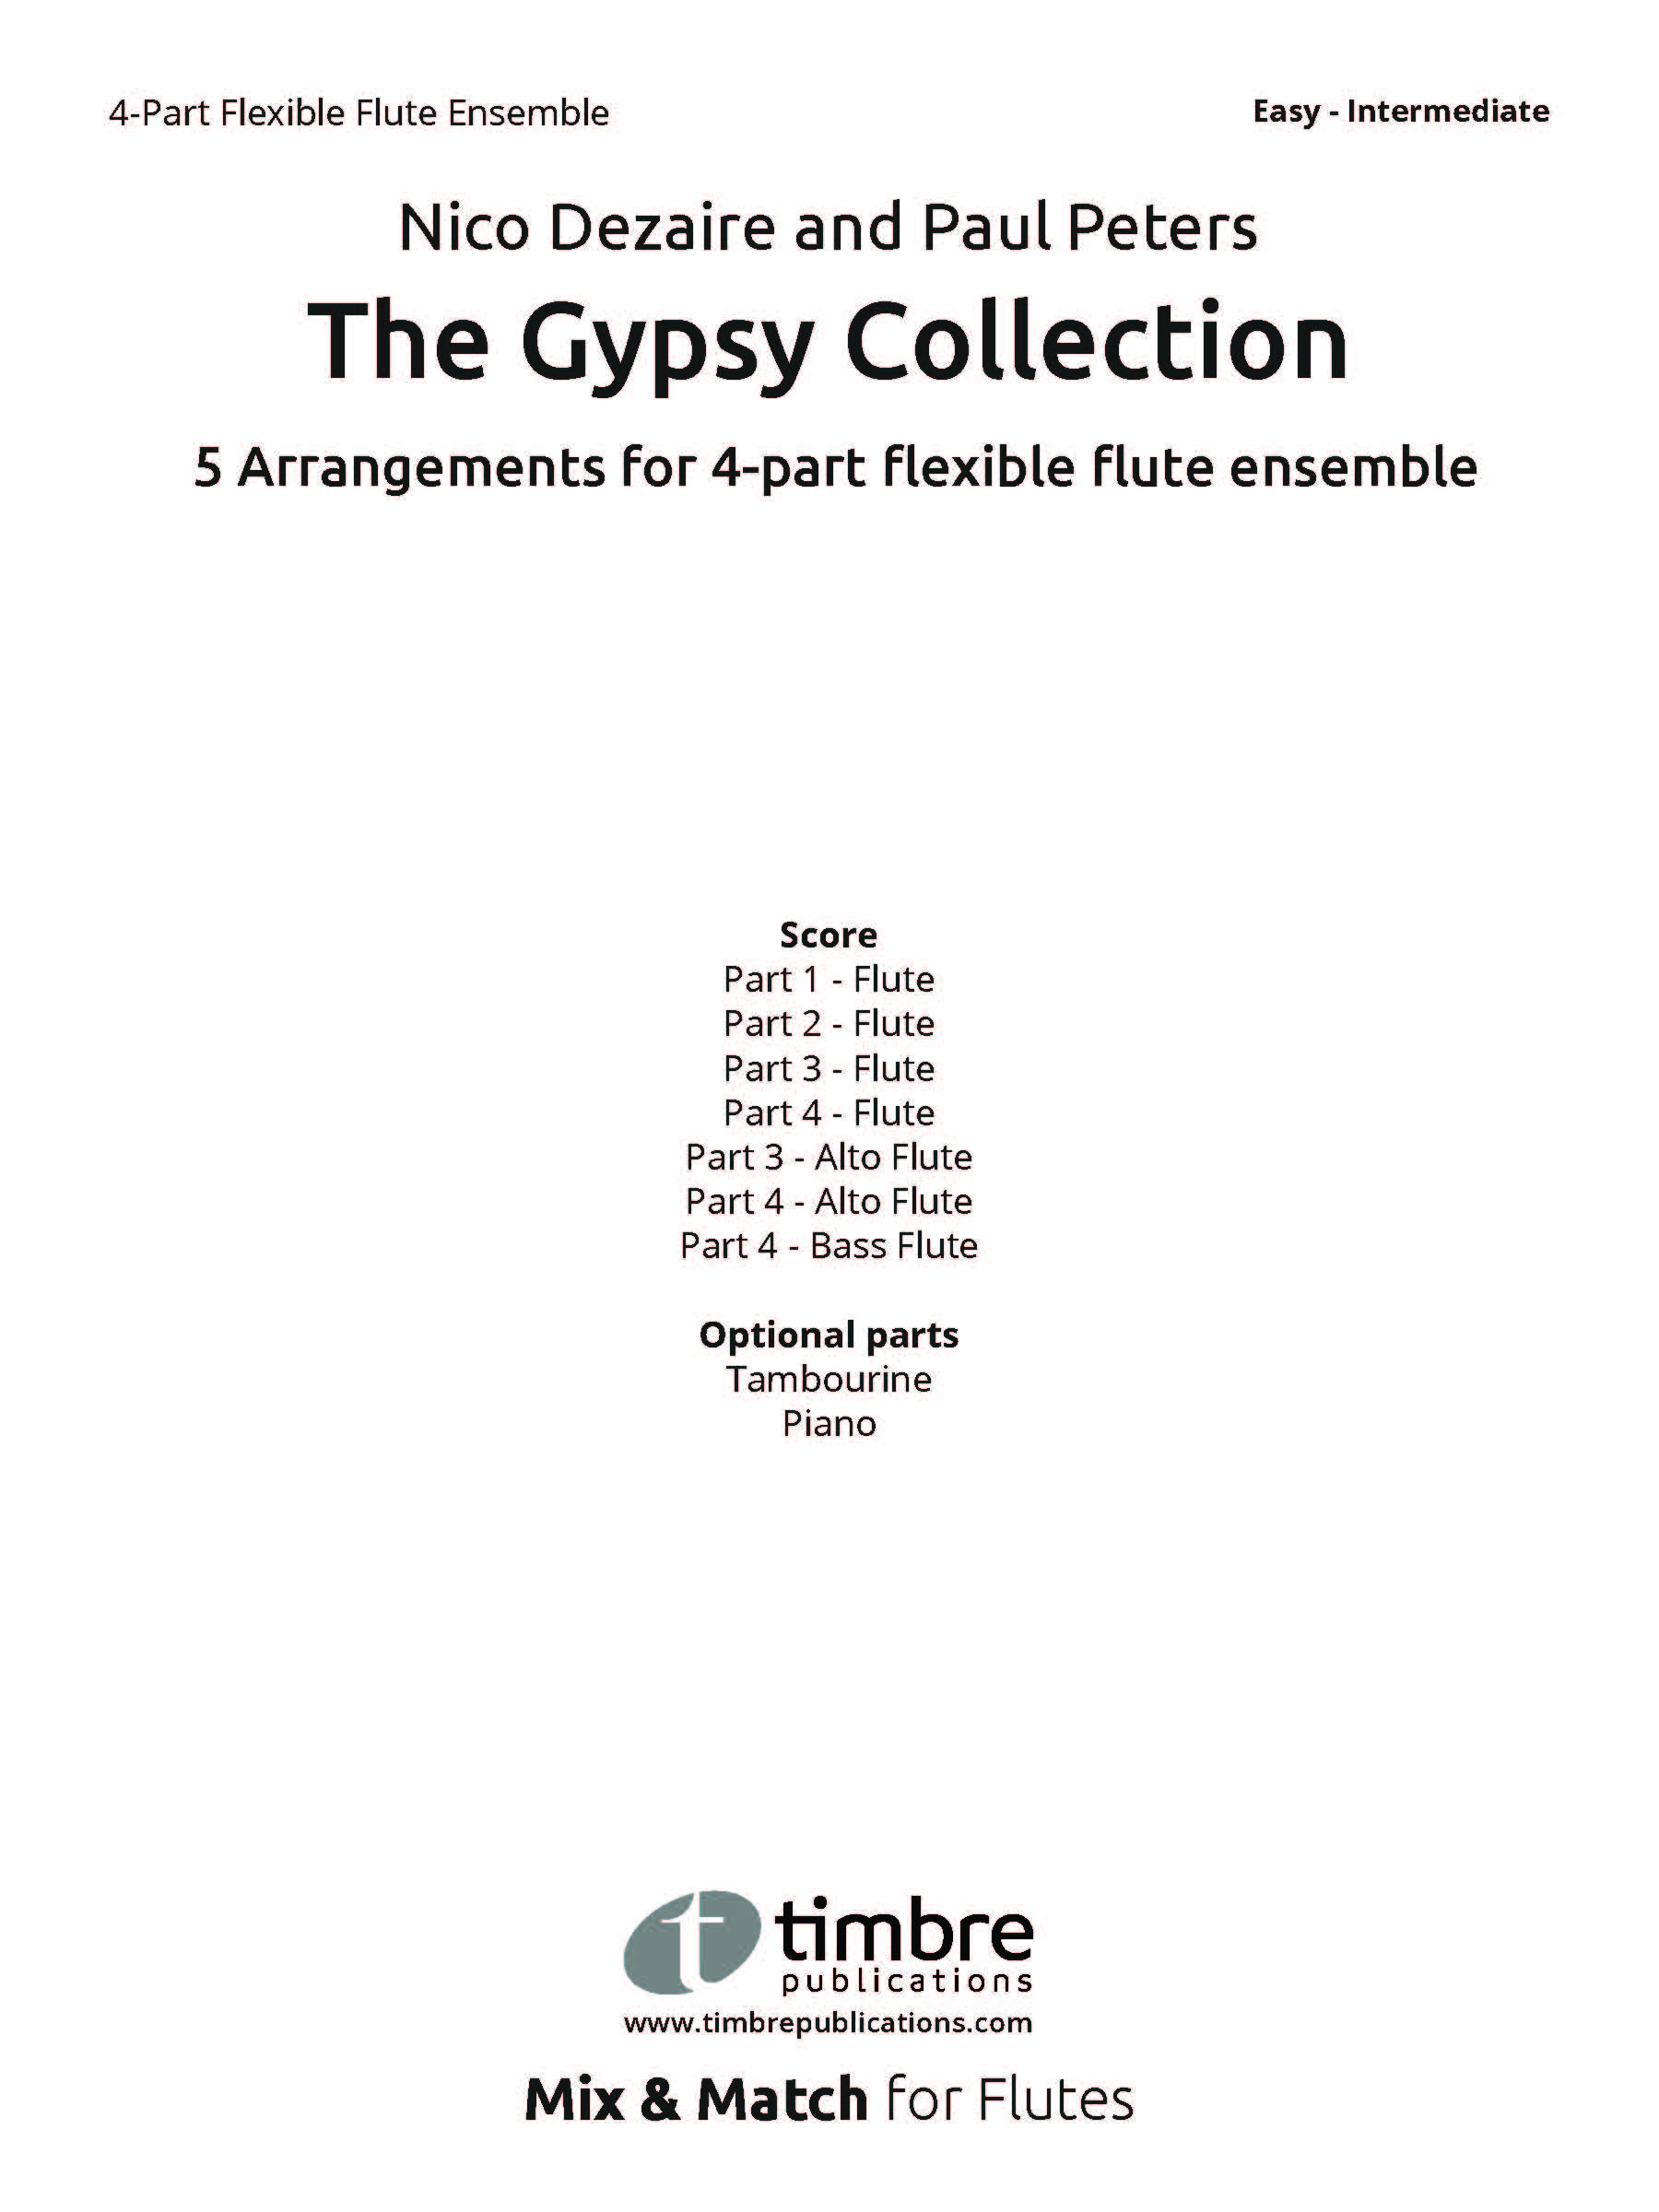 The Gypsy Collection